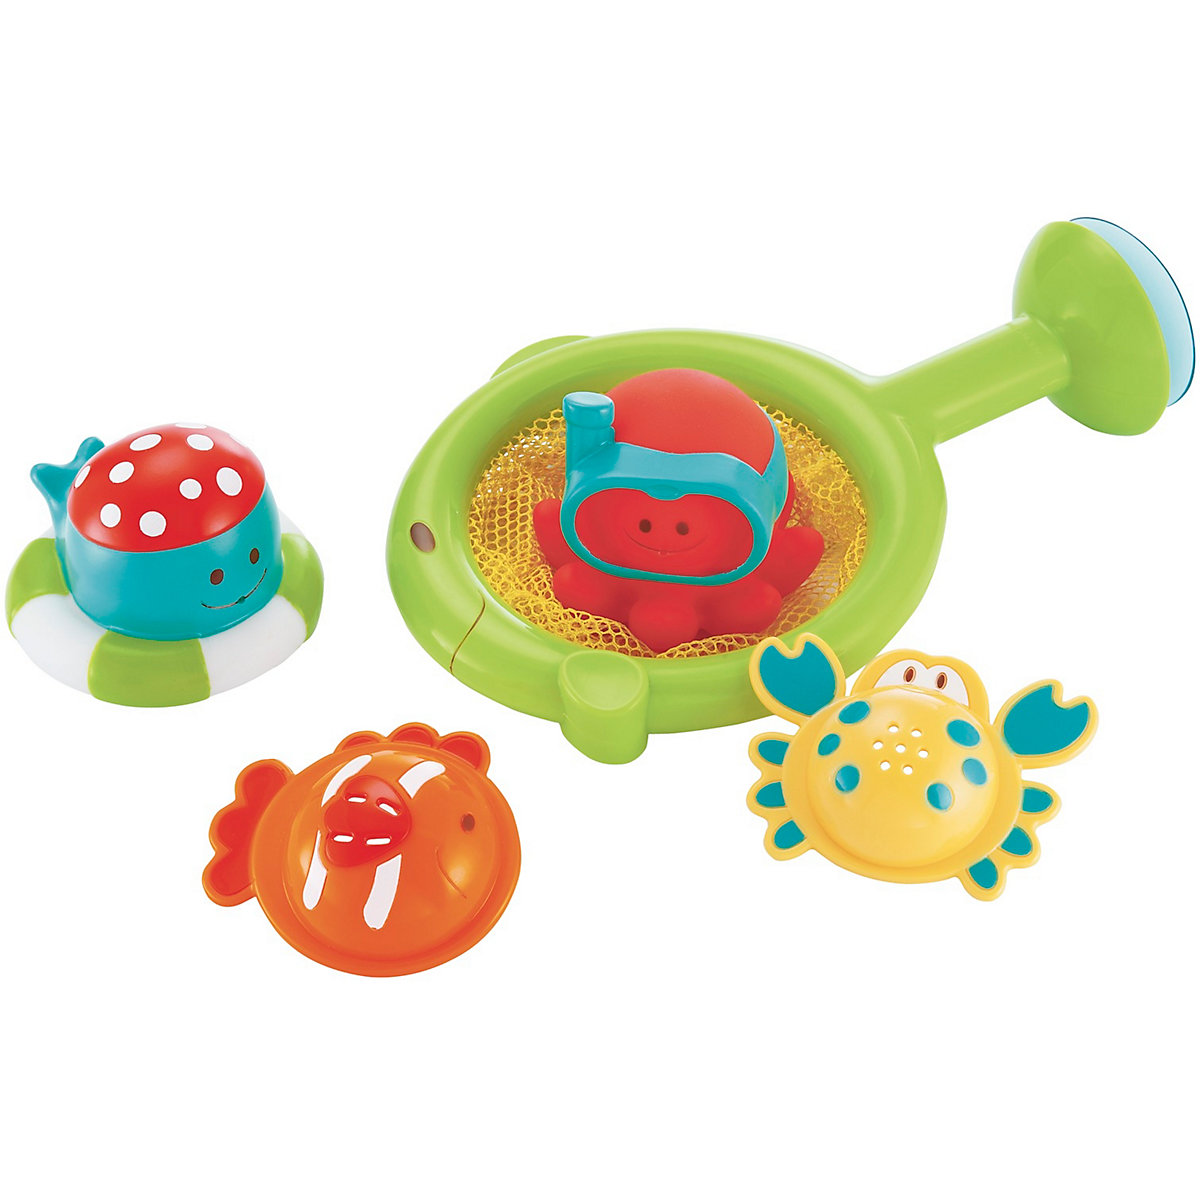 New elc boys and girls bath fishing set toy from 1 year ebay for Fishing toy set